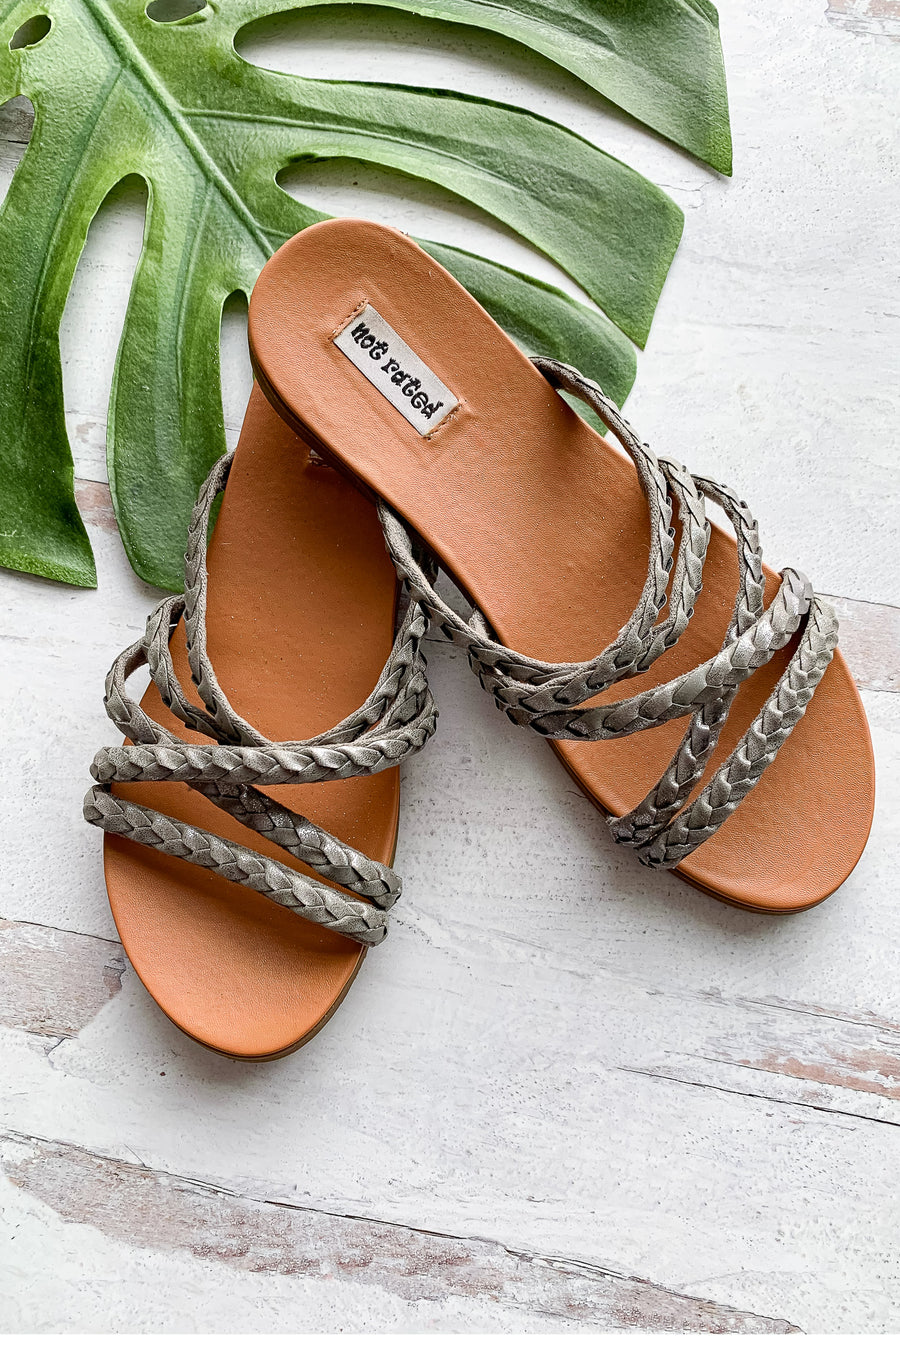 Lana Braided Strappy Sandals - Silver womens trendy braided slip on detail closet candy front